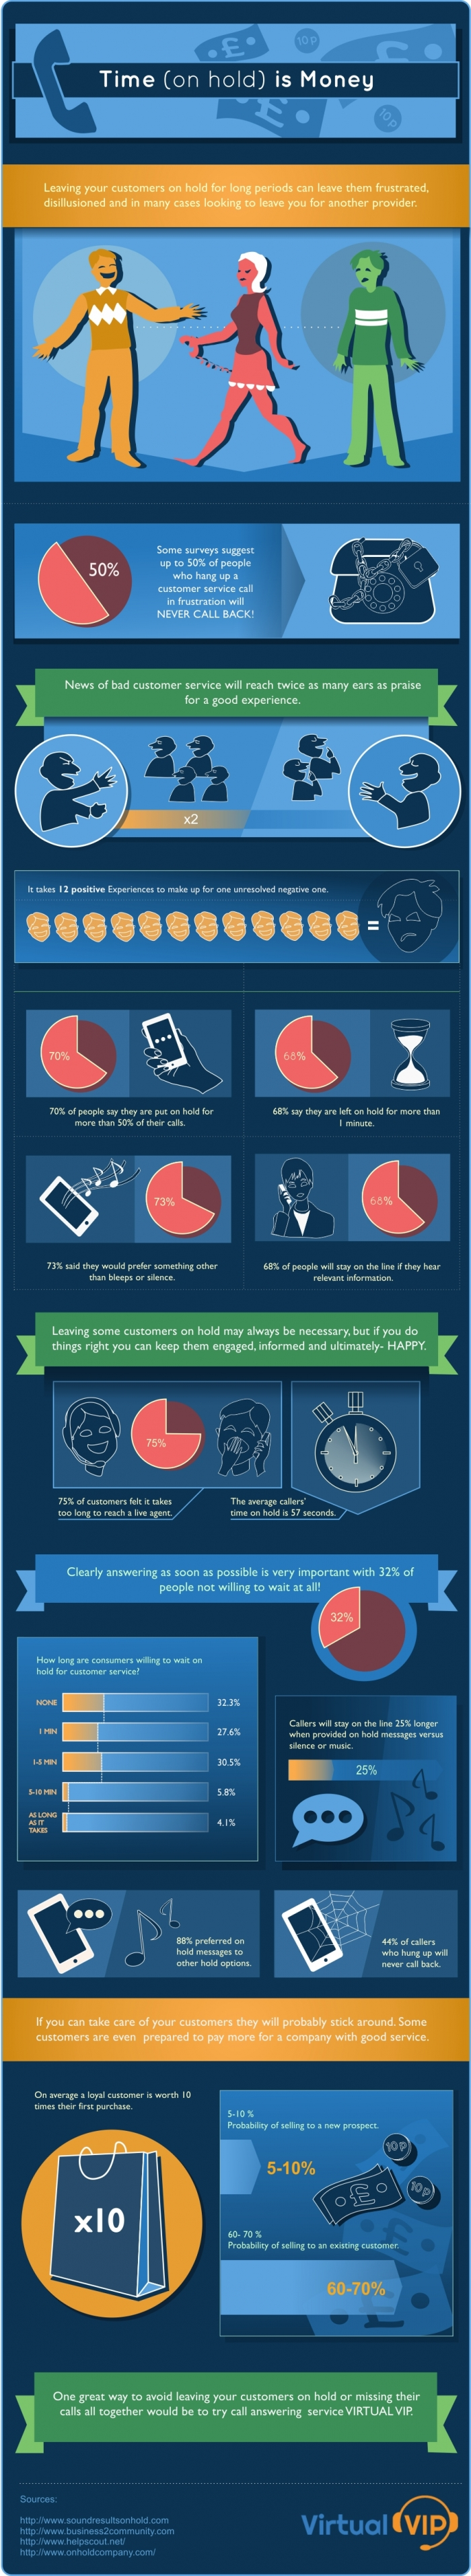 If You Hold The Customer Business get Affected #Infographics